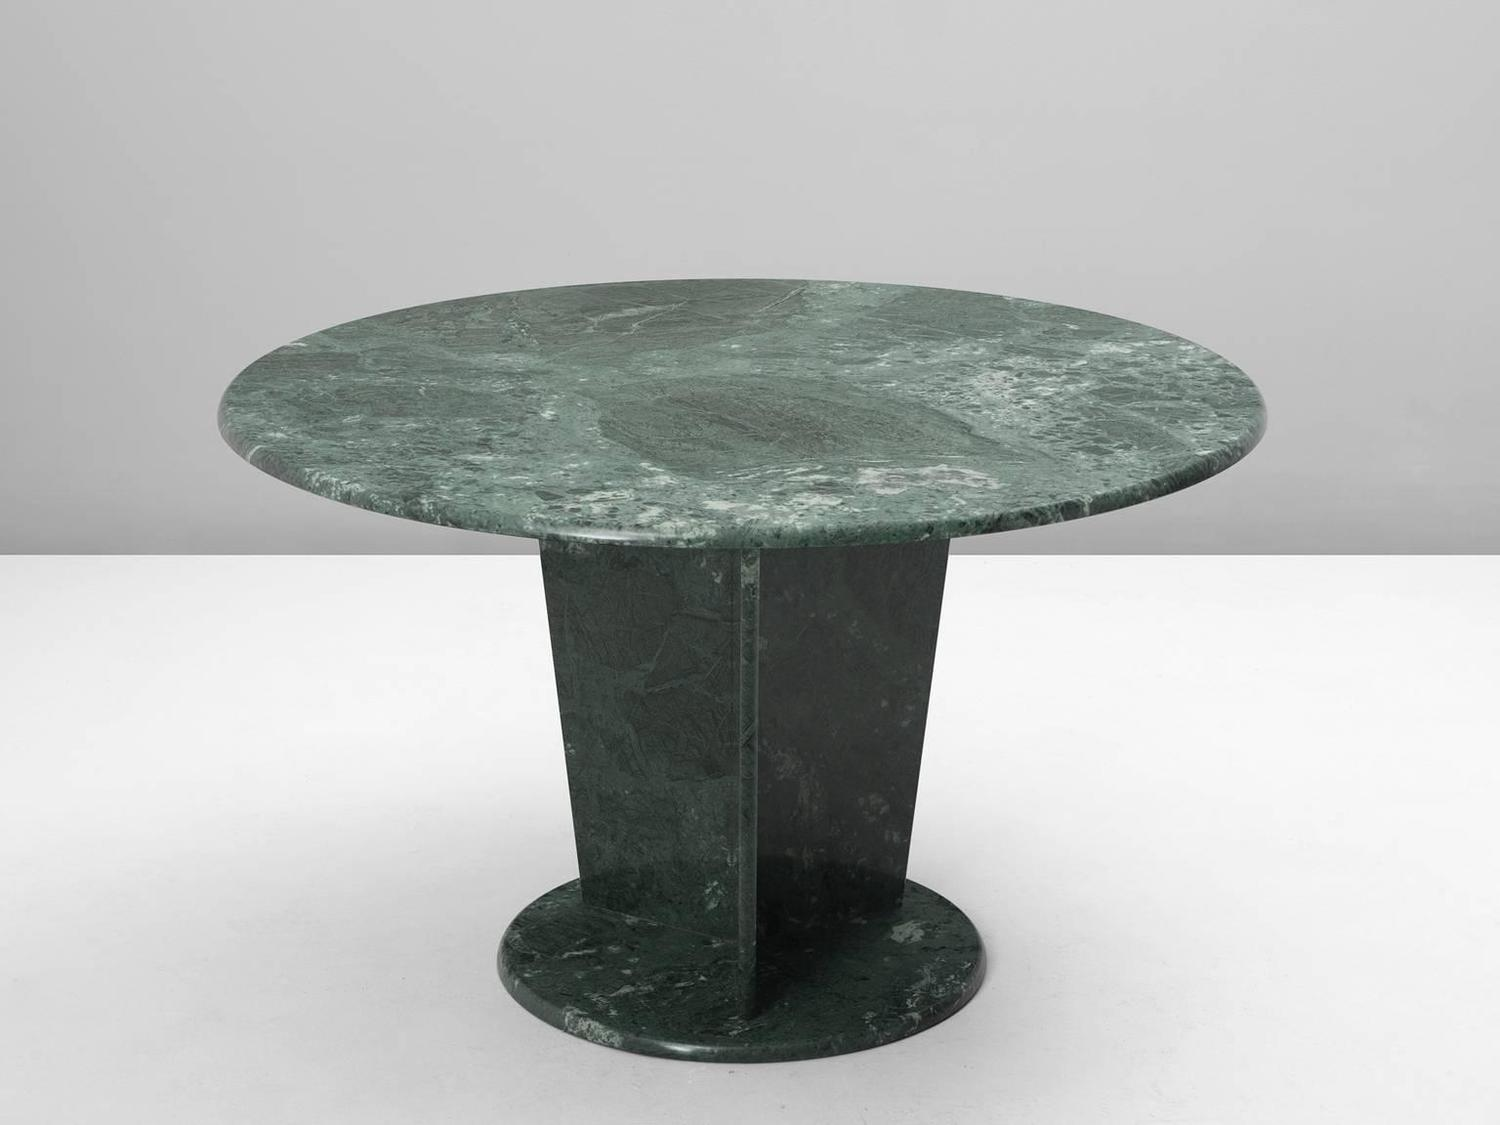 Round Green Marble : Round green marble center table for sale at stdibs